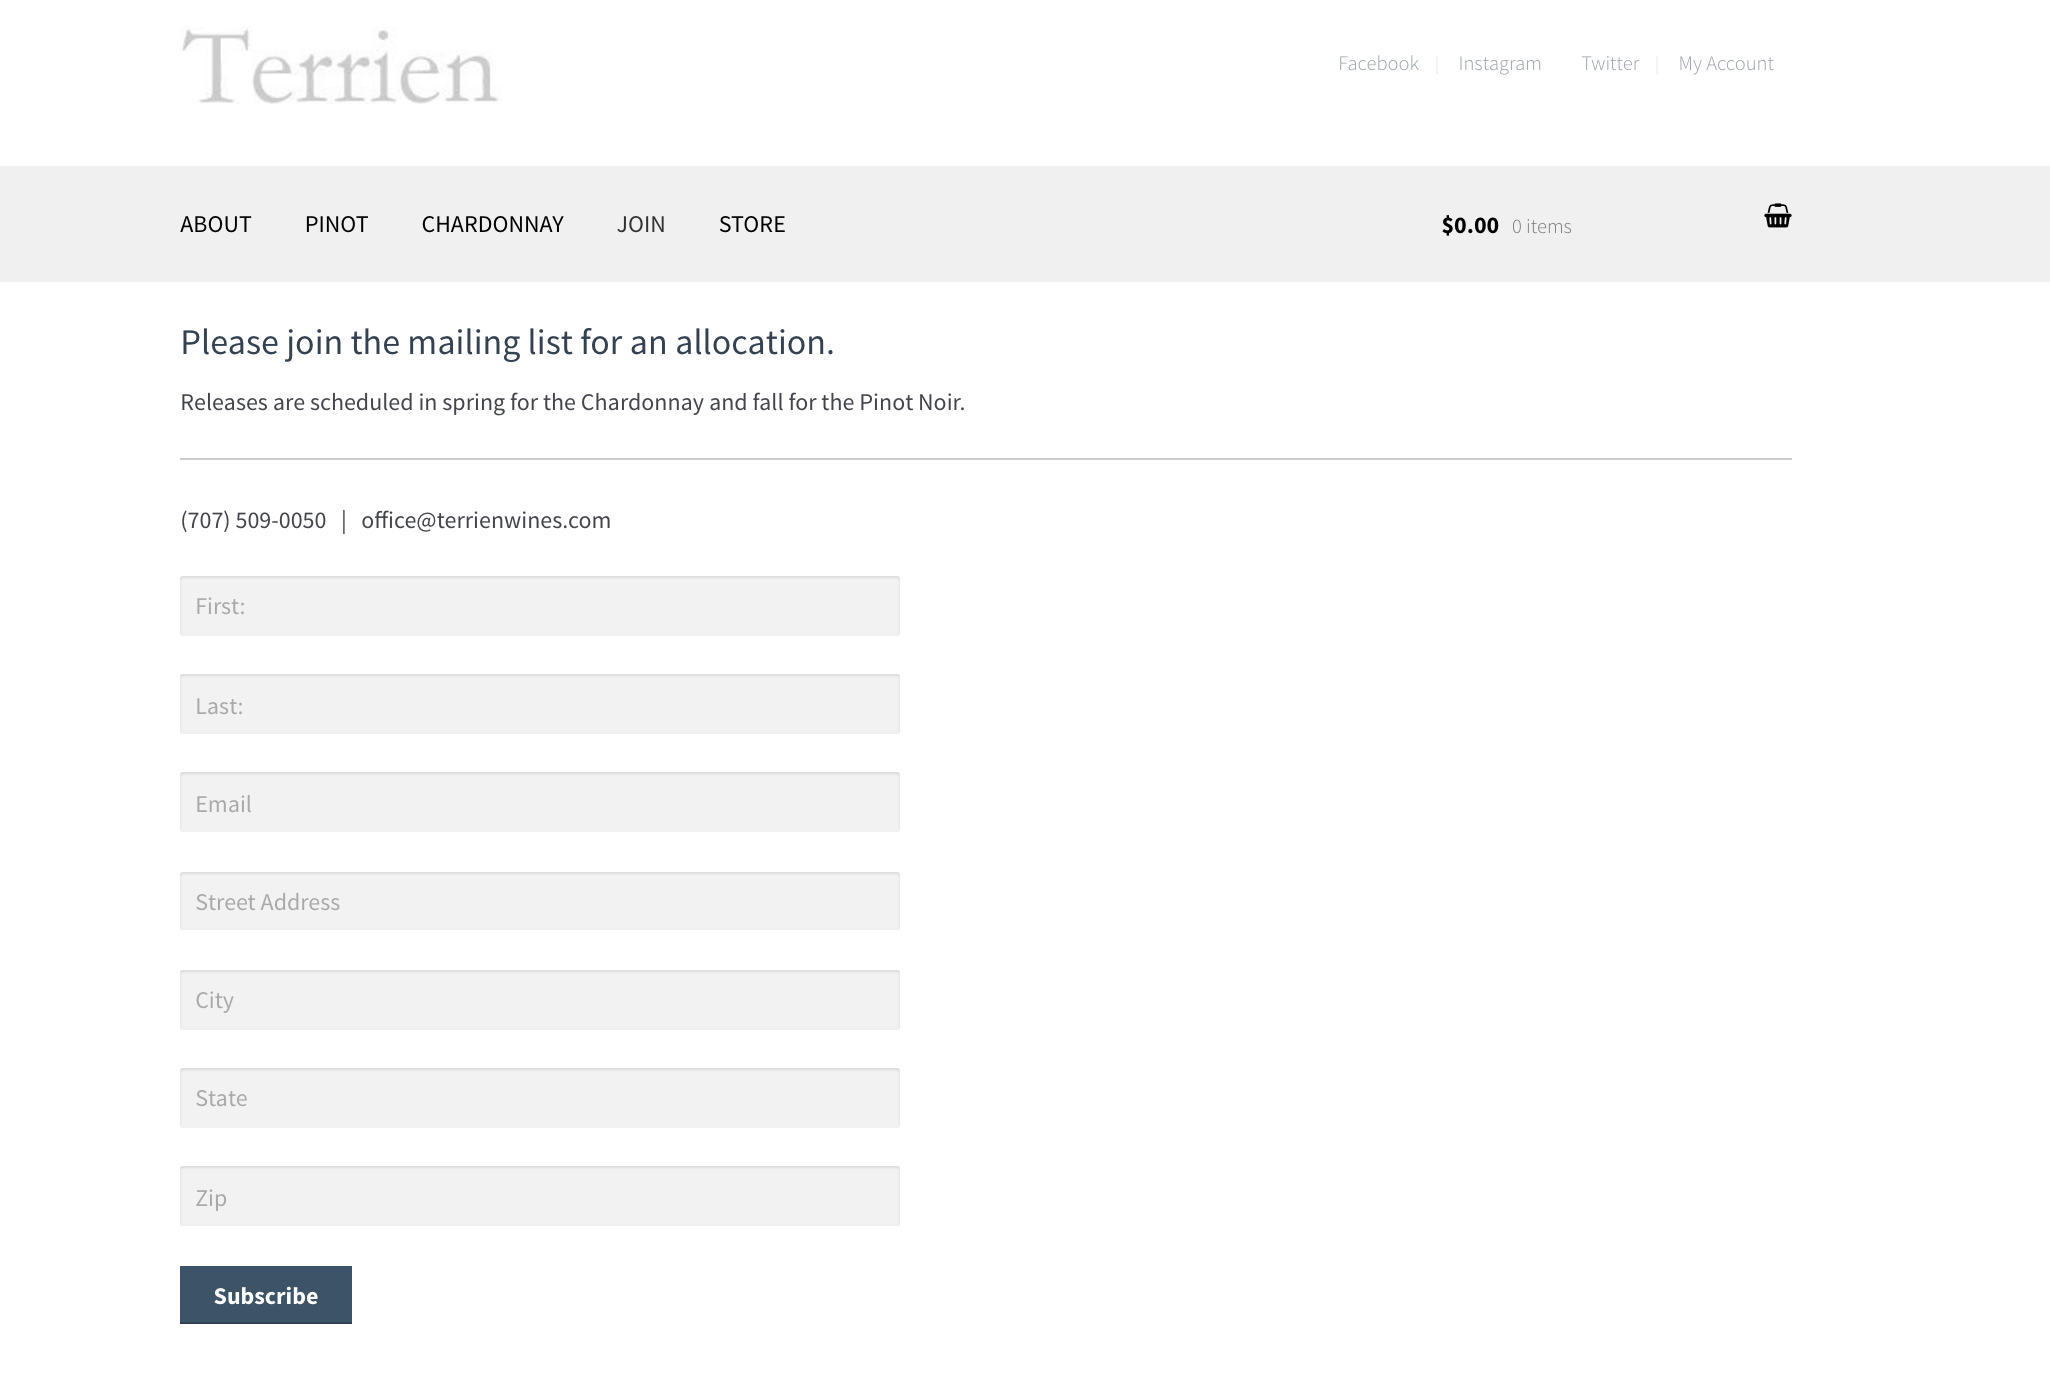 To get access to Terrien wines you need to sign up to the mailing list